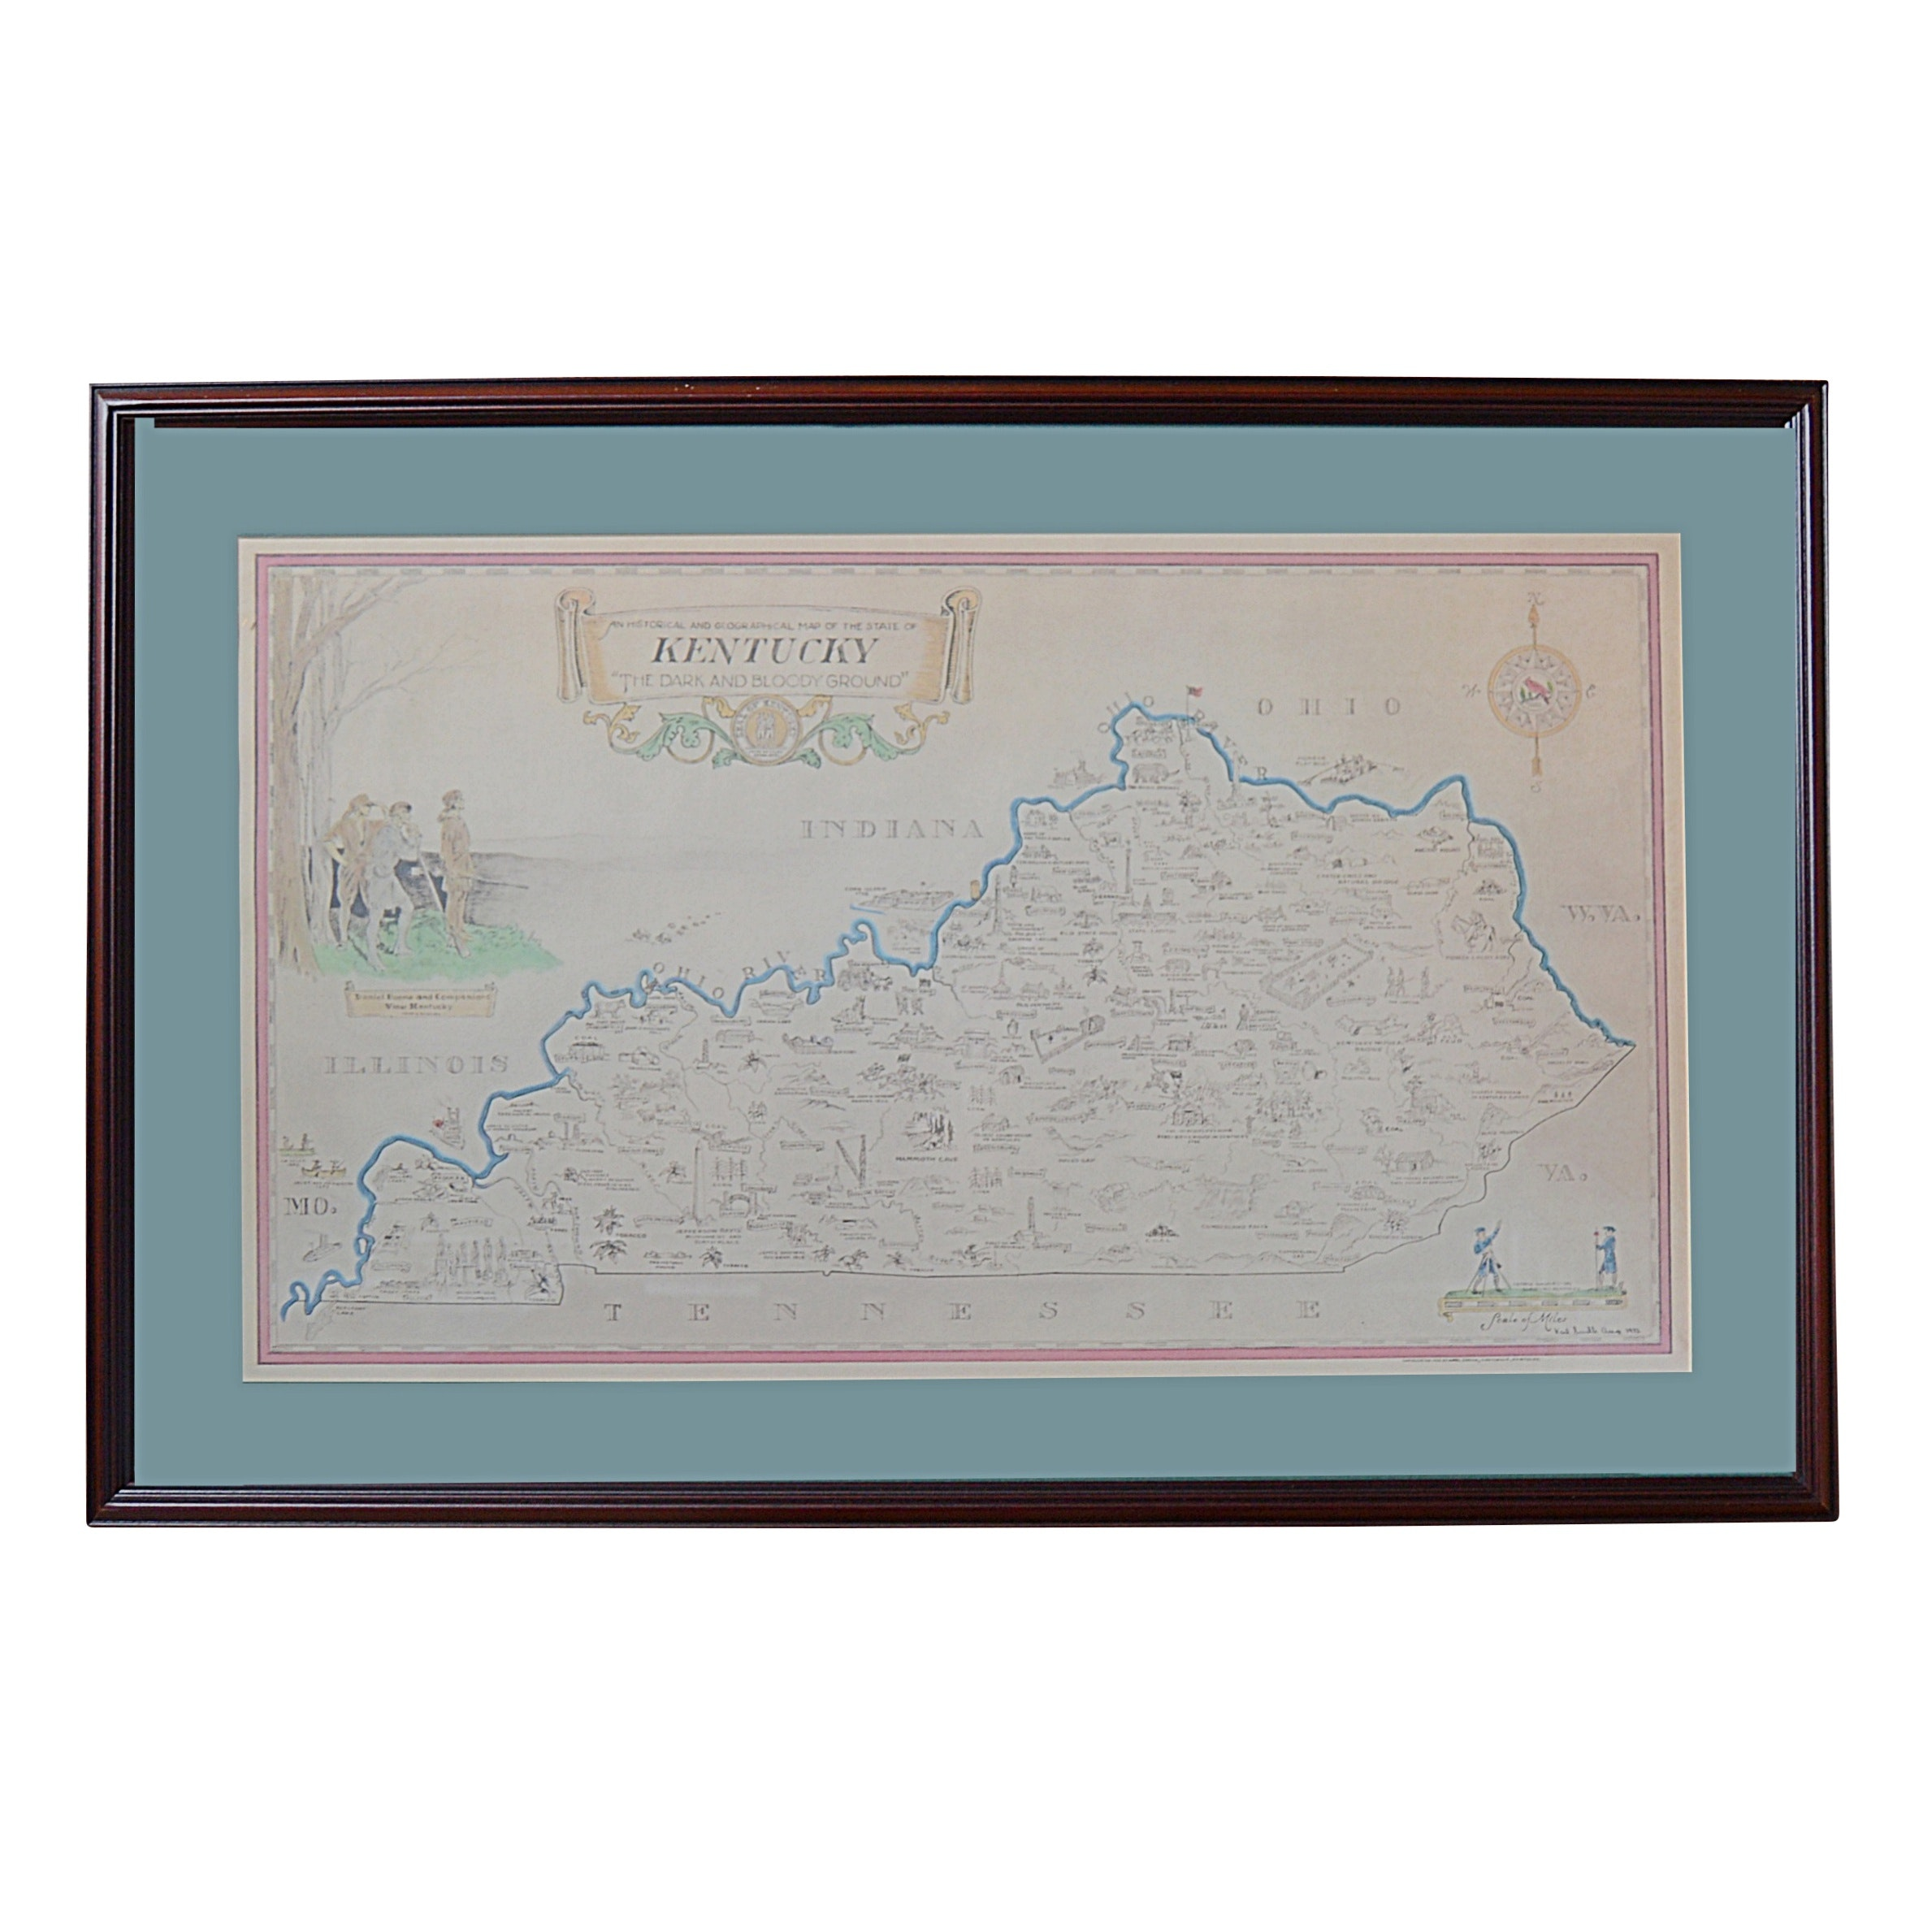 Offset Lithograph Map of Kentucky after Karl Smith